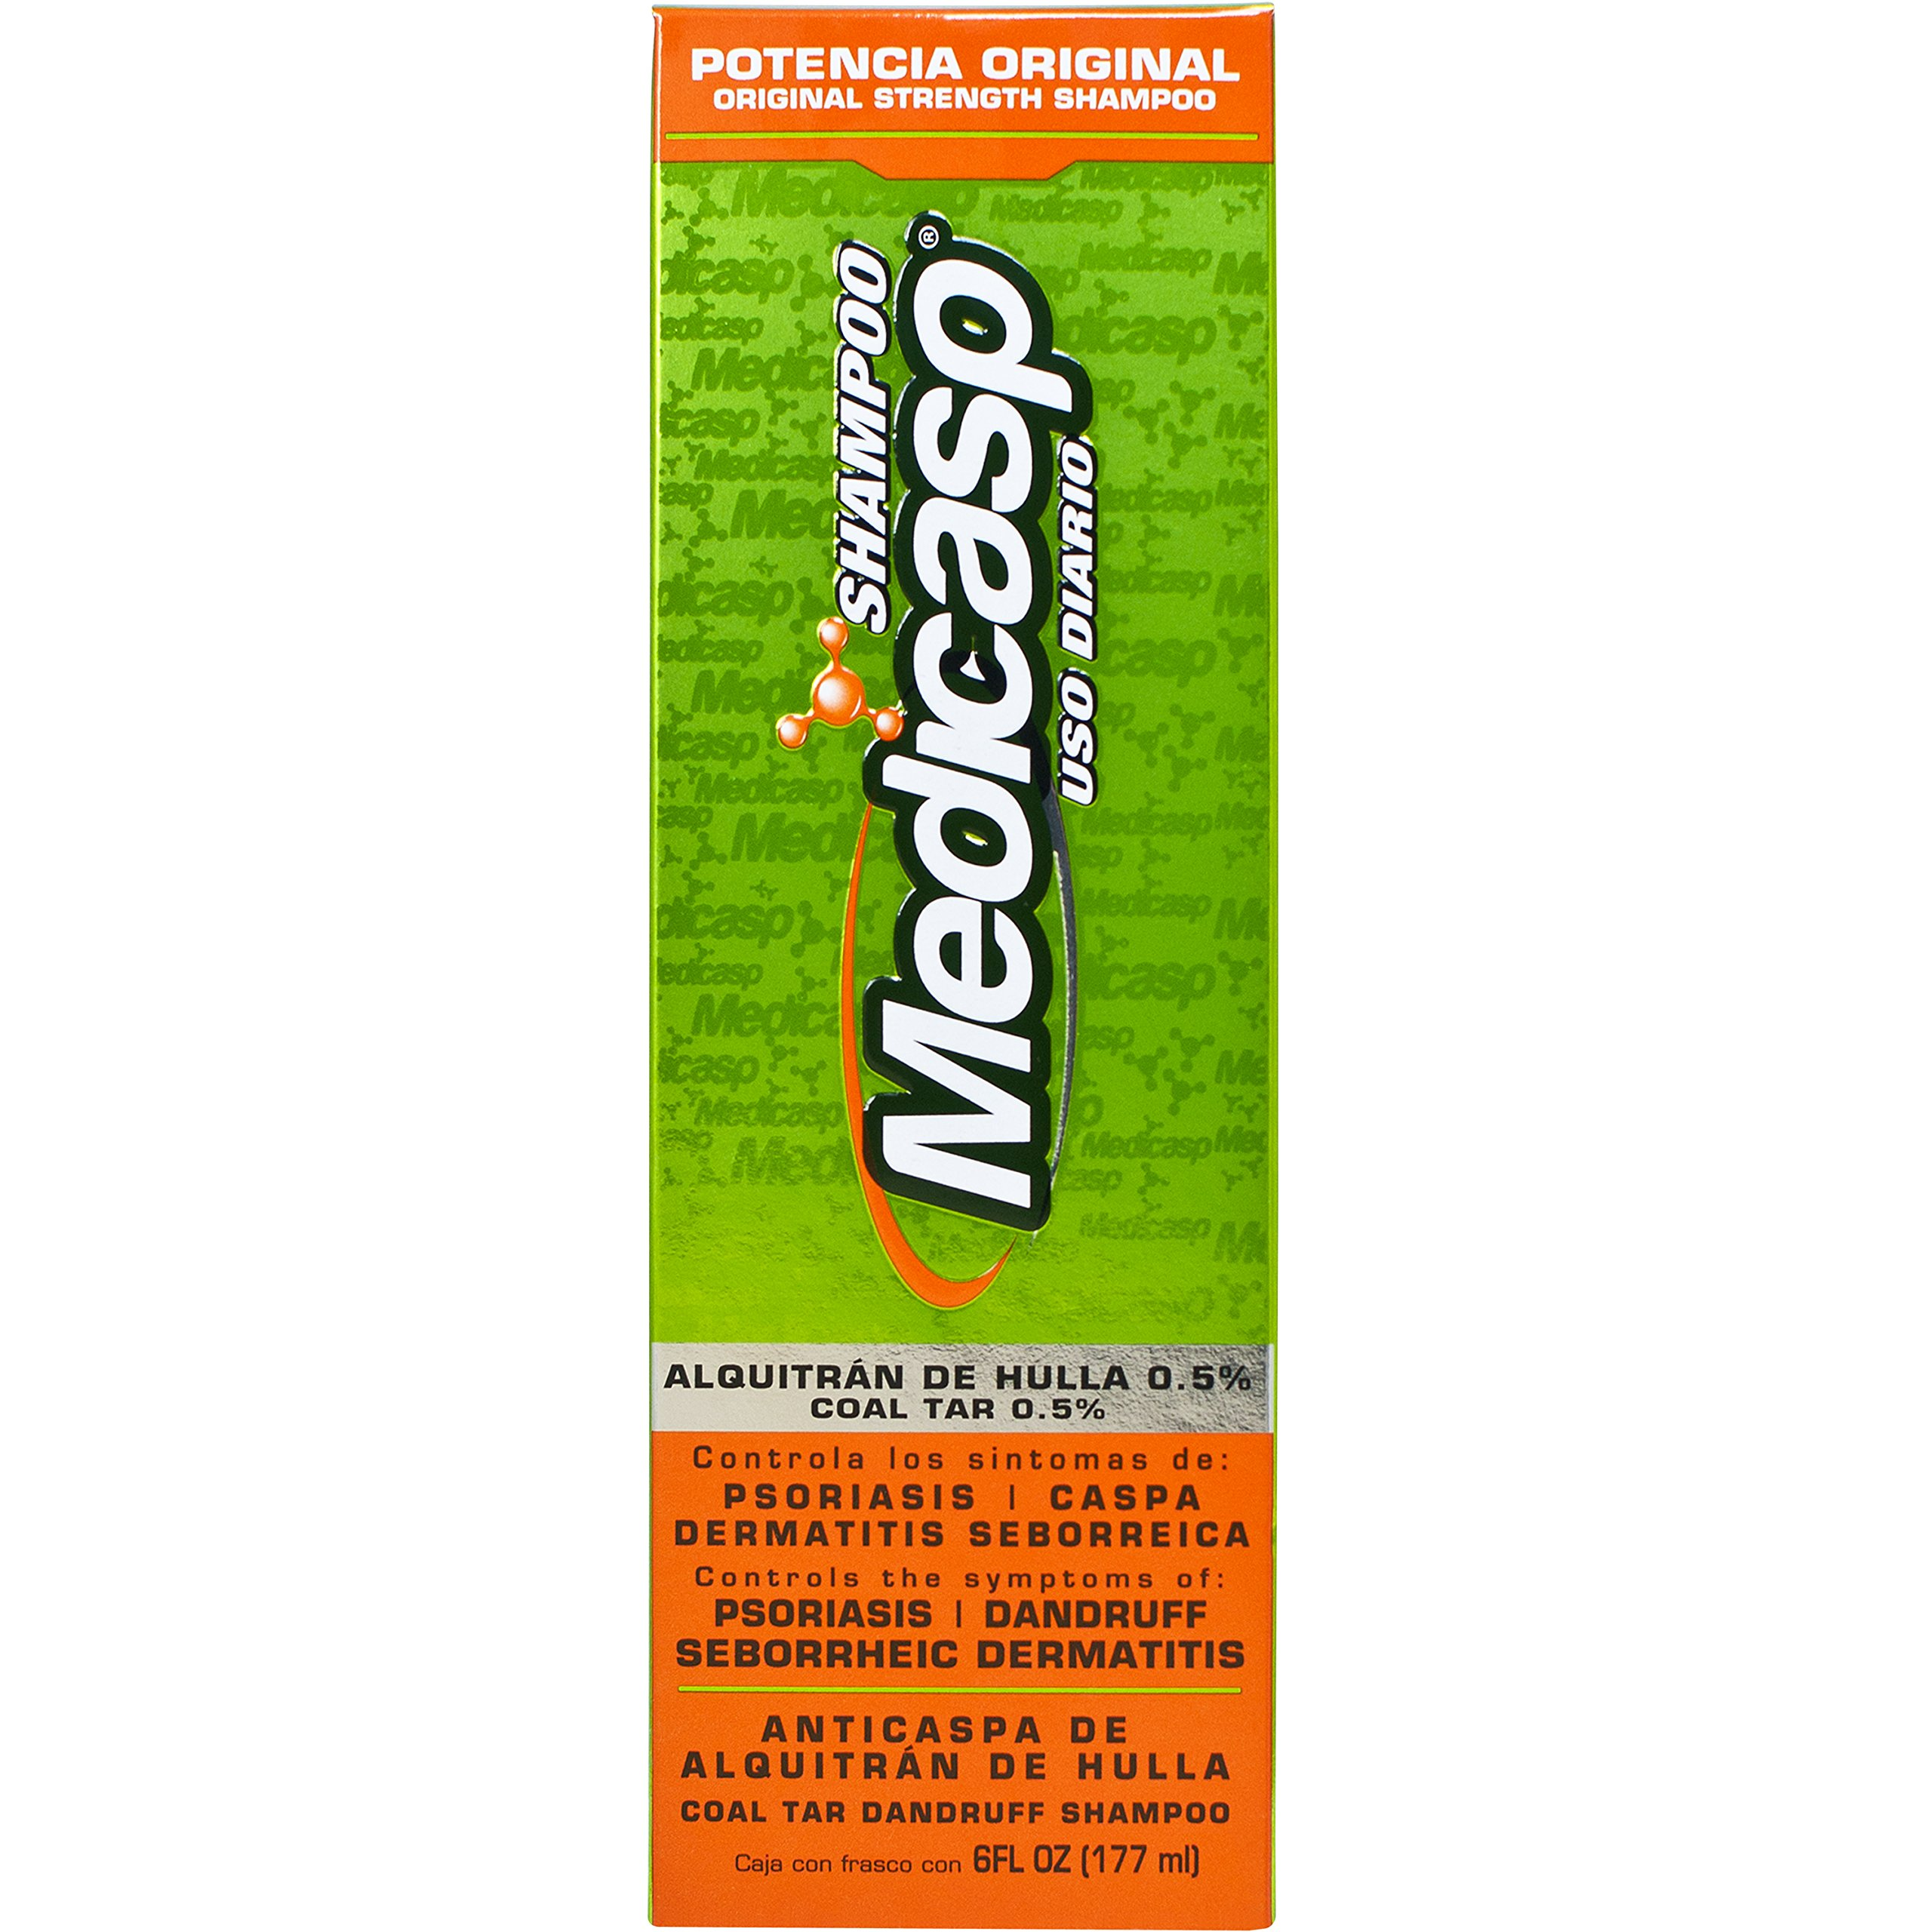 Medicasp Coal Tar Gel Anti-Dandruff Shampoo - Treats Dandruff, and Seborrheic Dermatitis and Psoriasis, 6 fluid ounce